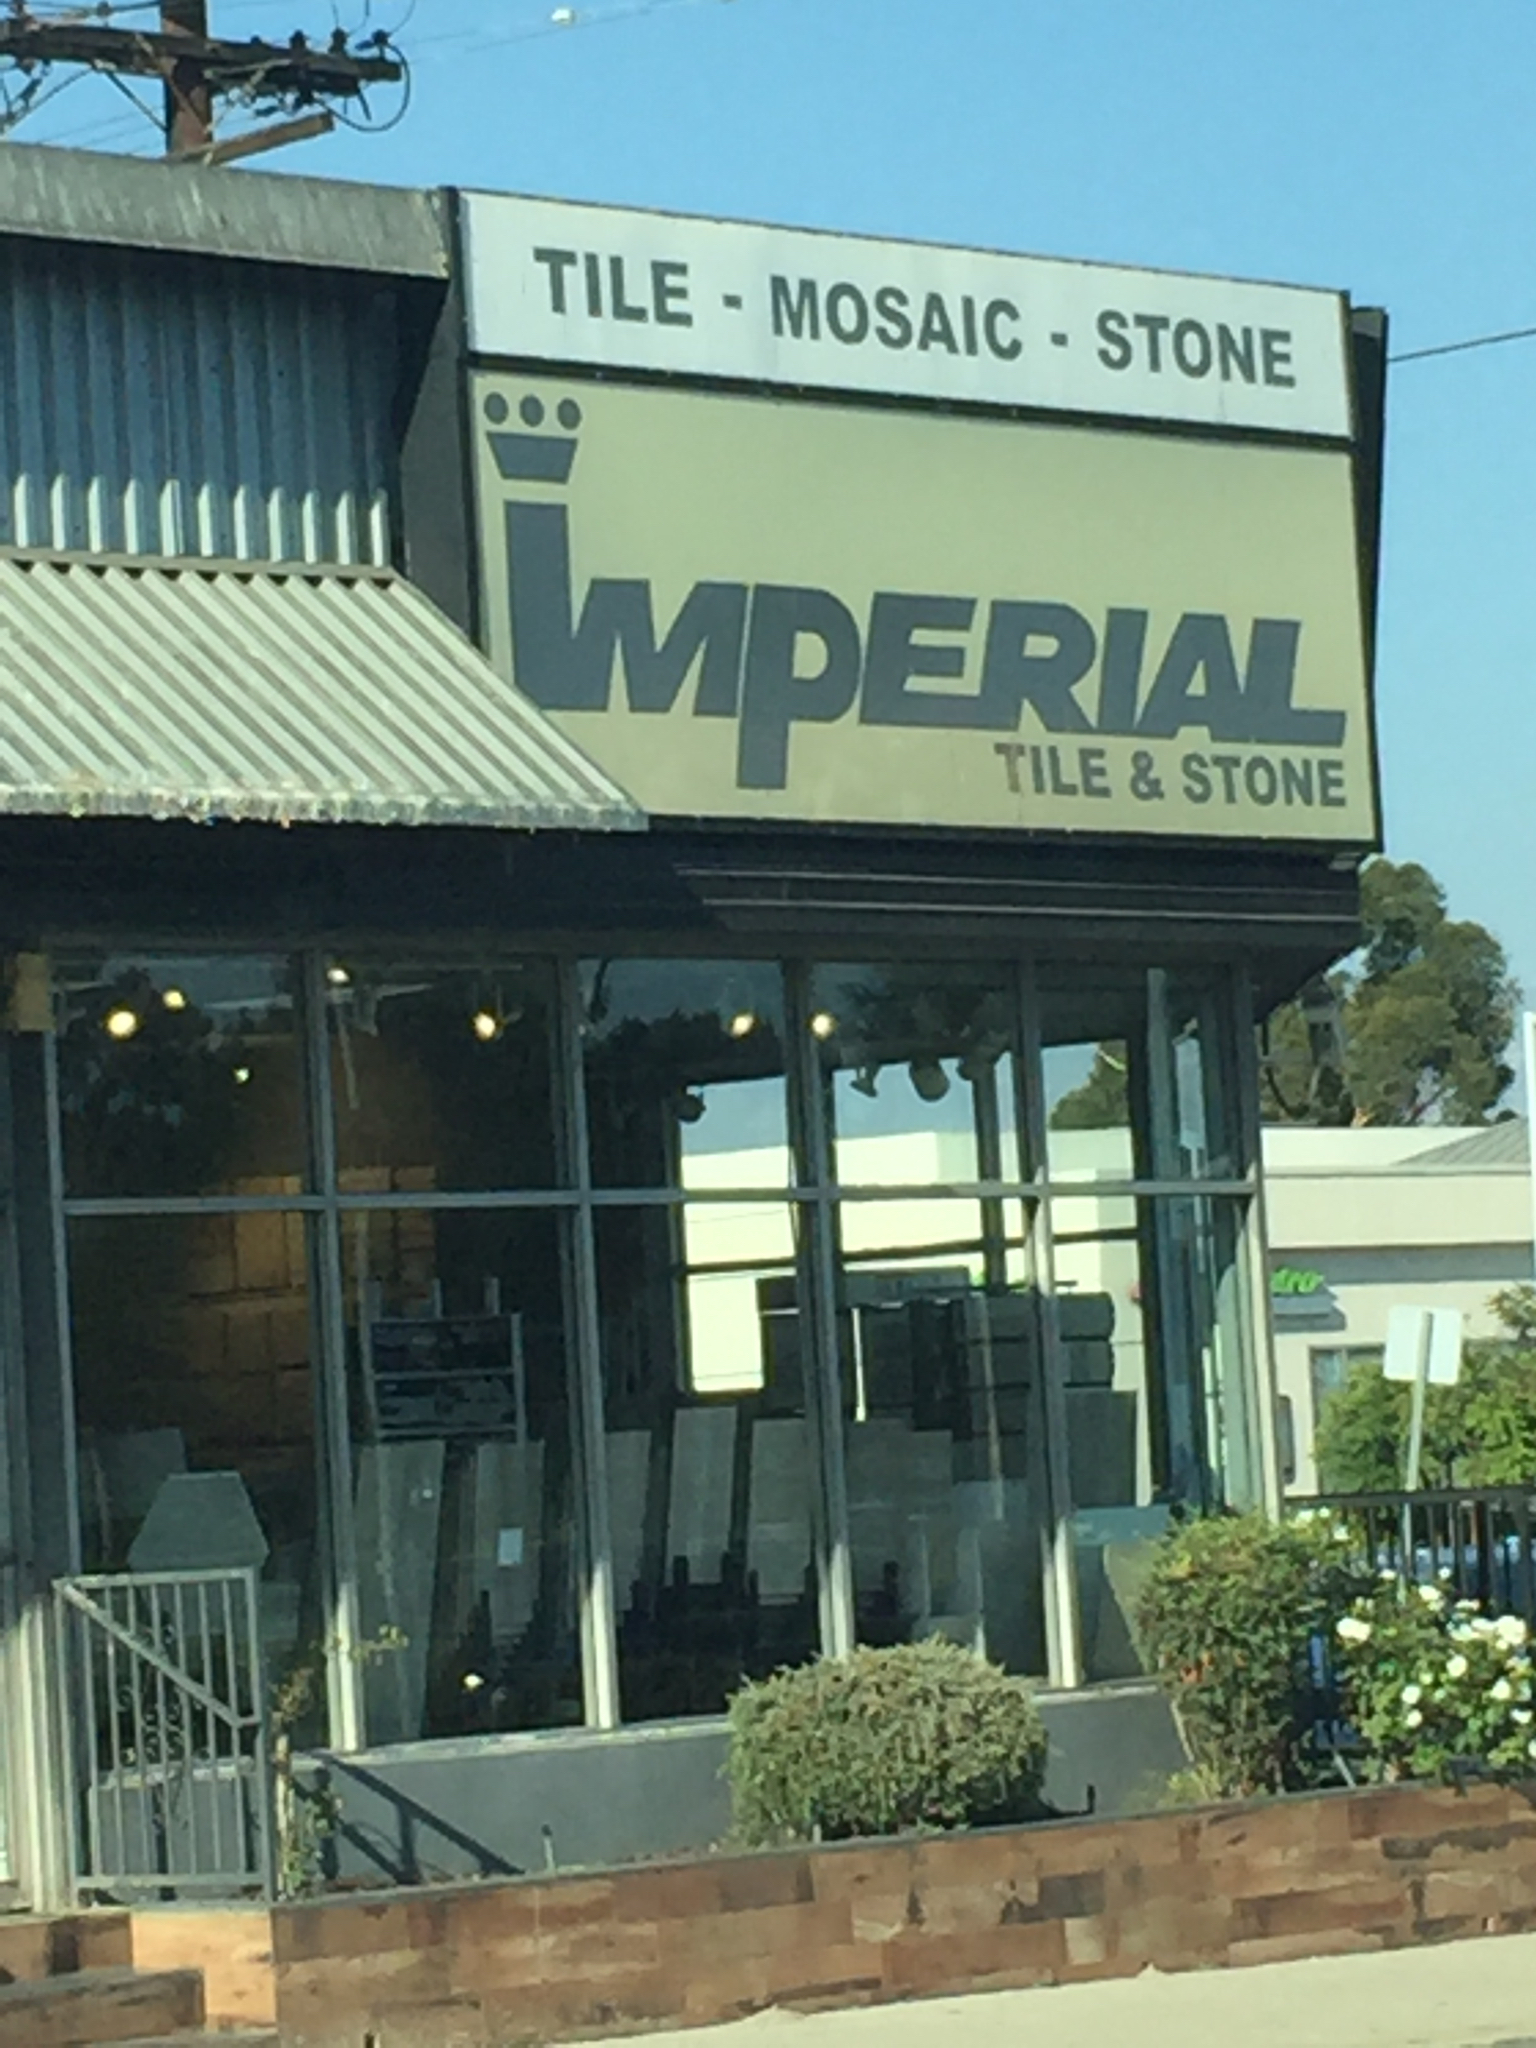 Imperial Tile Stone 7211 Whitsett Ave North Hollywood Ca 91605 Yp